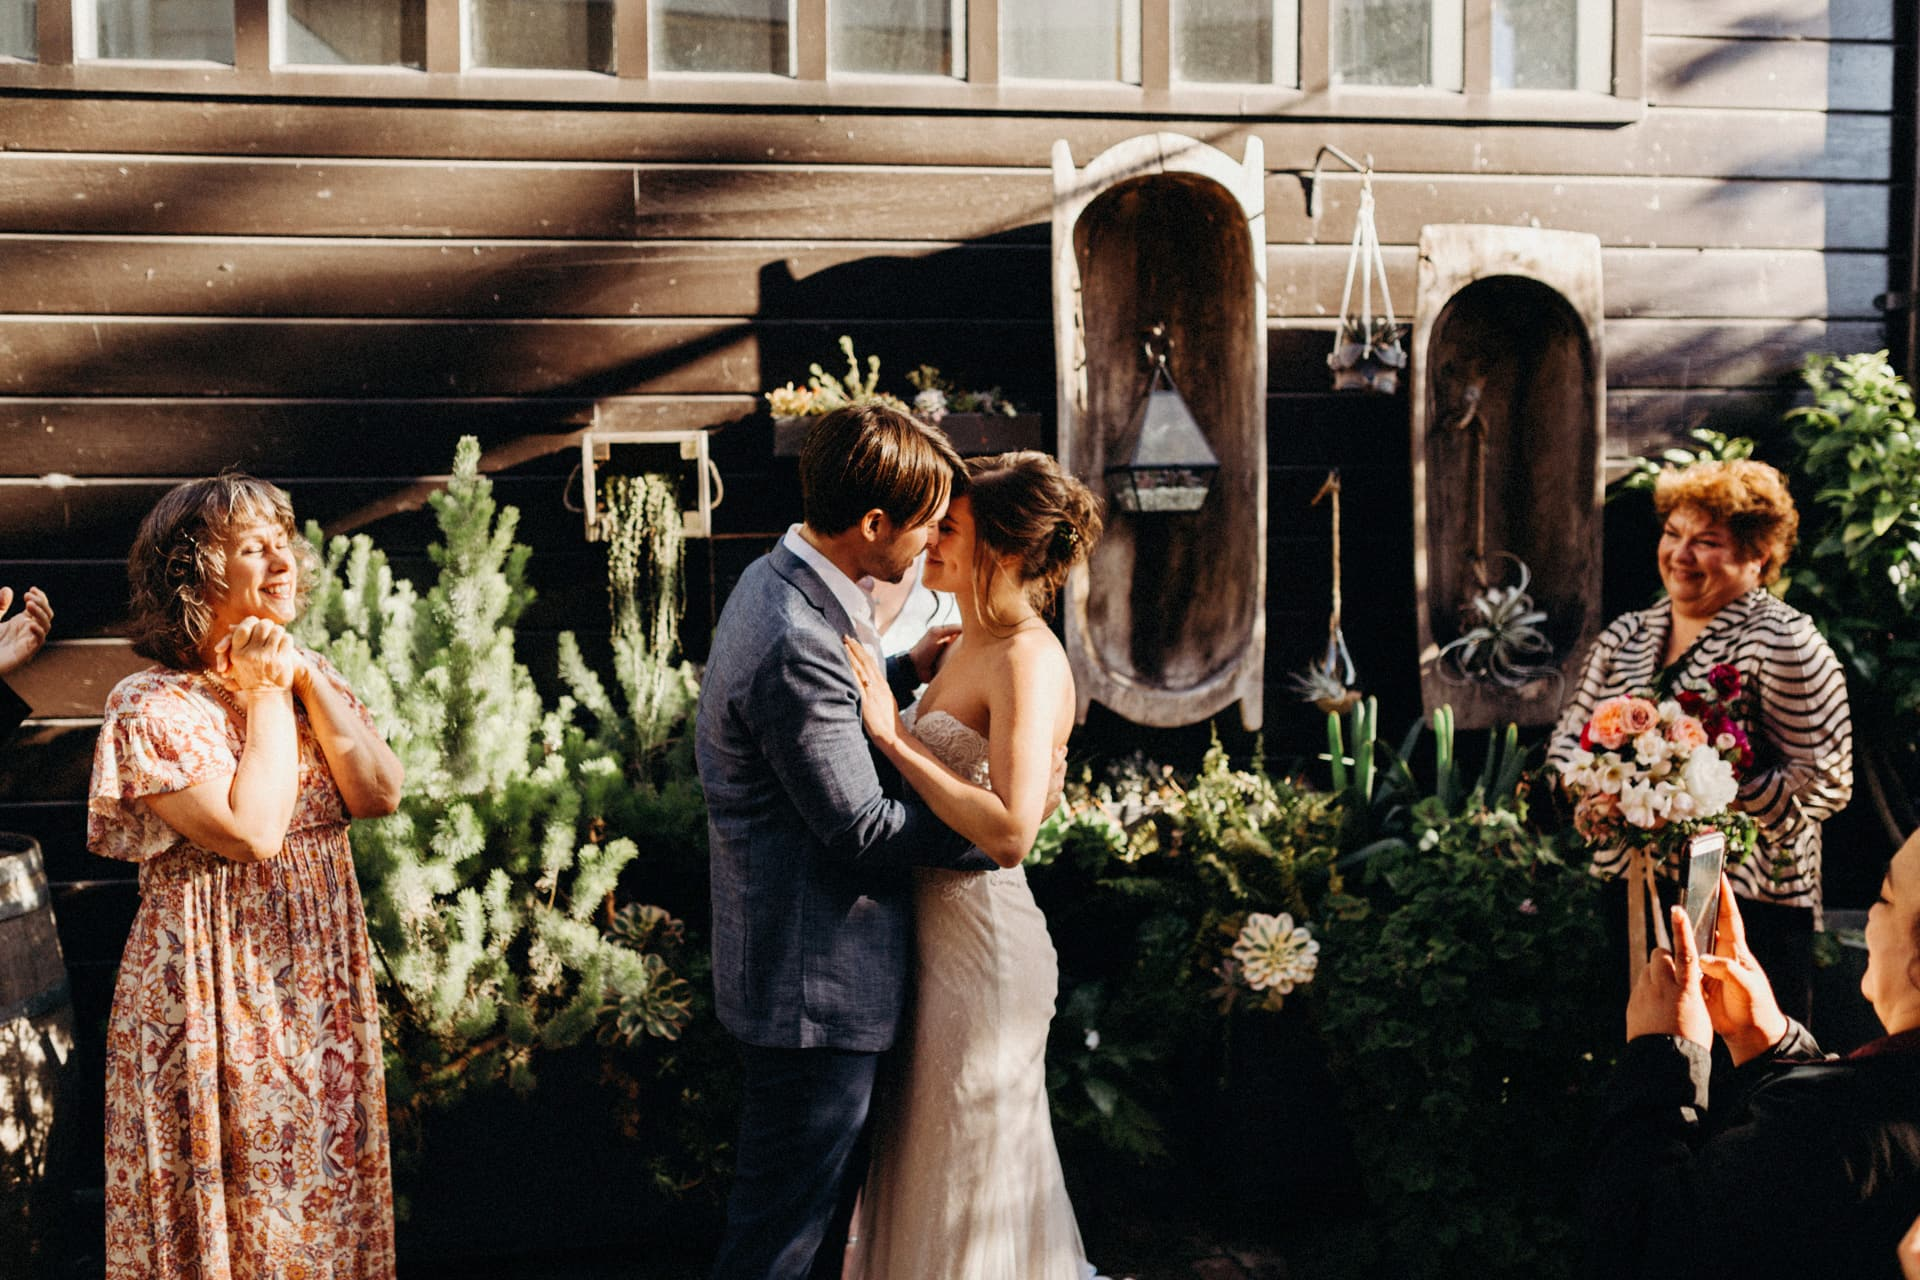 the ceremony at the Stable Cafe in San Francisco